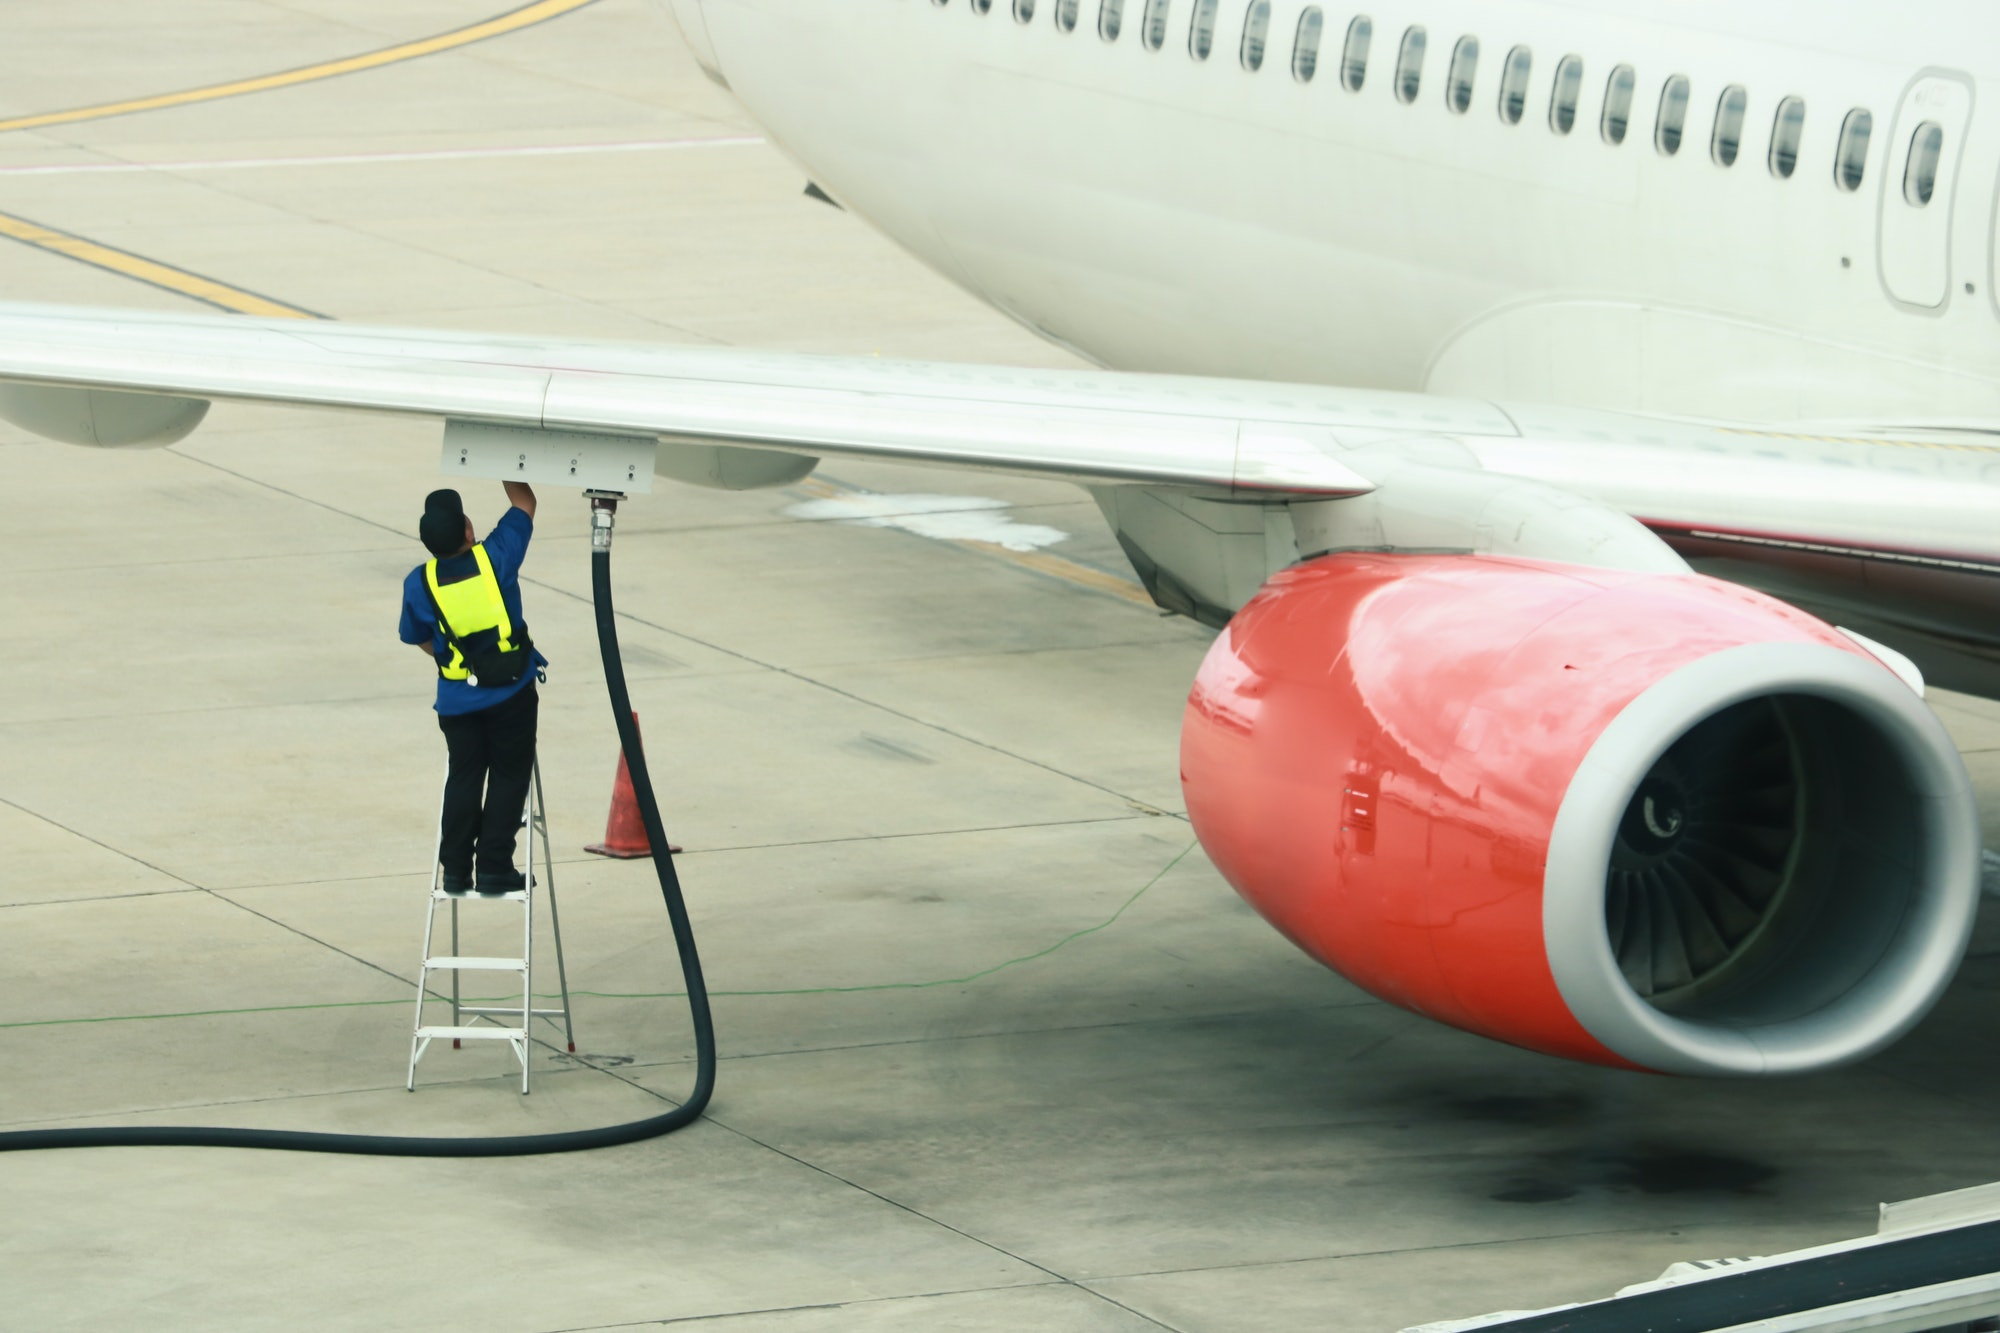 Airplane Fueling